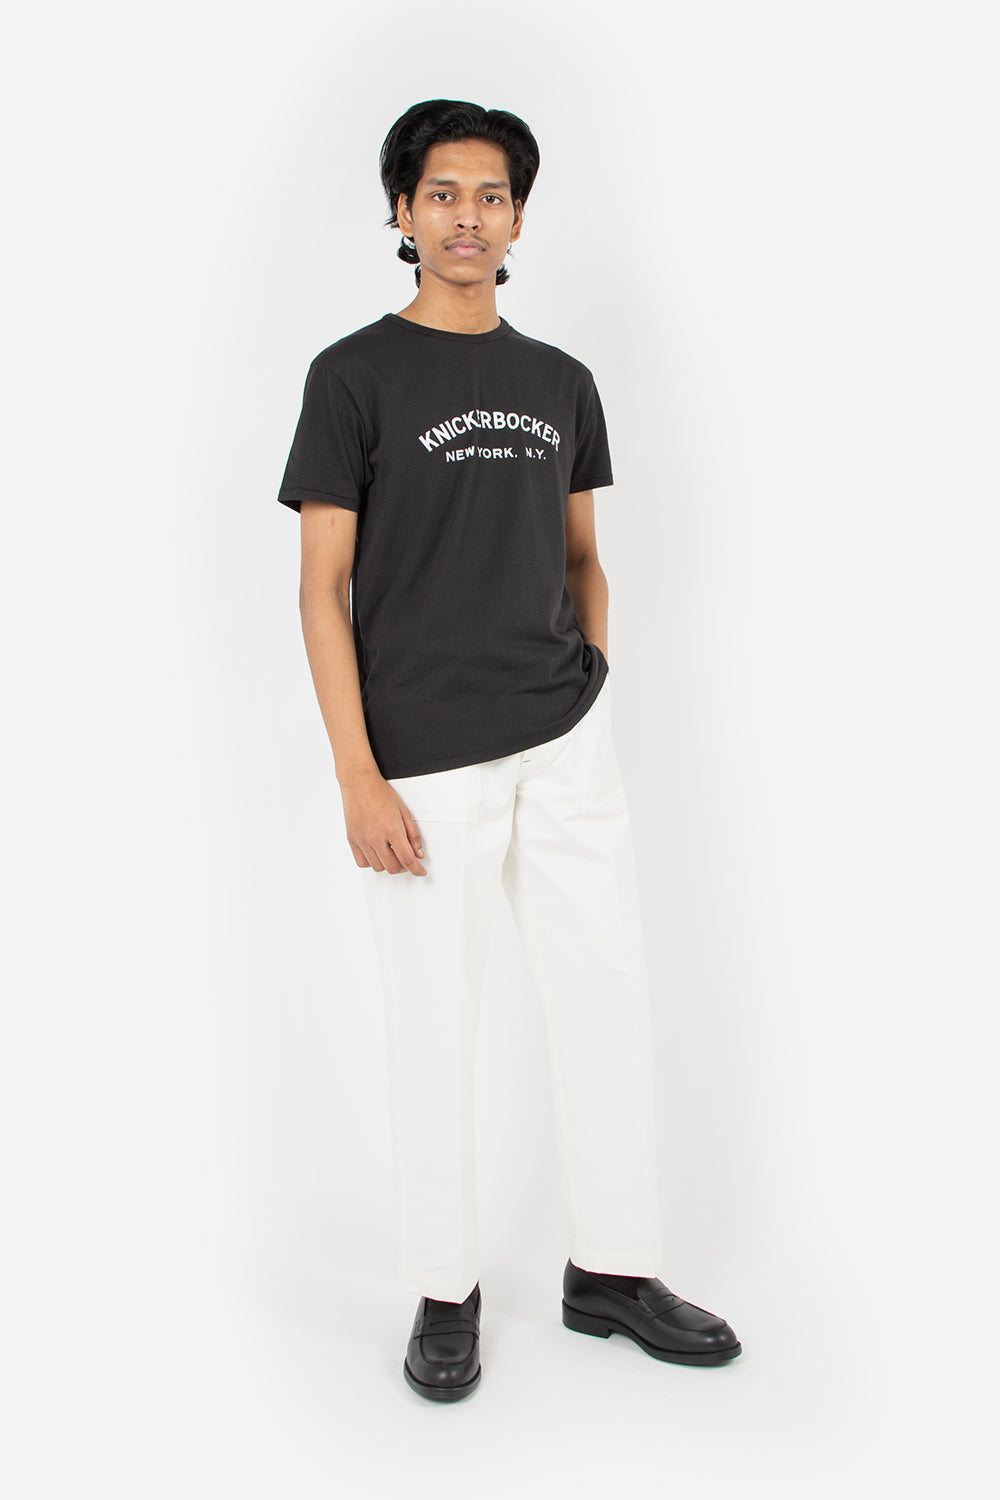 knickerbocker core tee logo coal